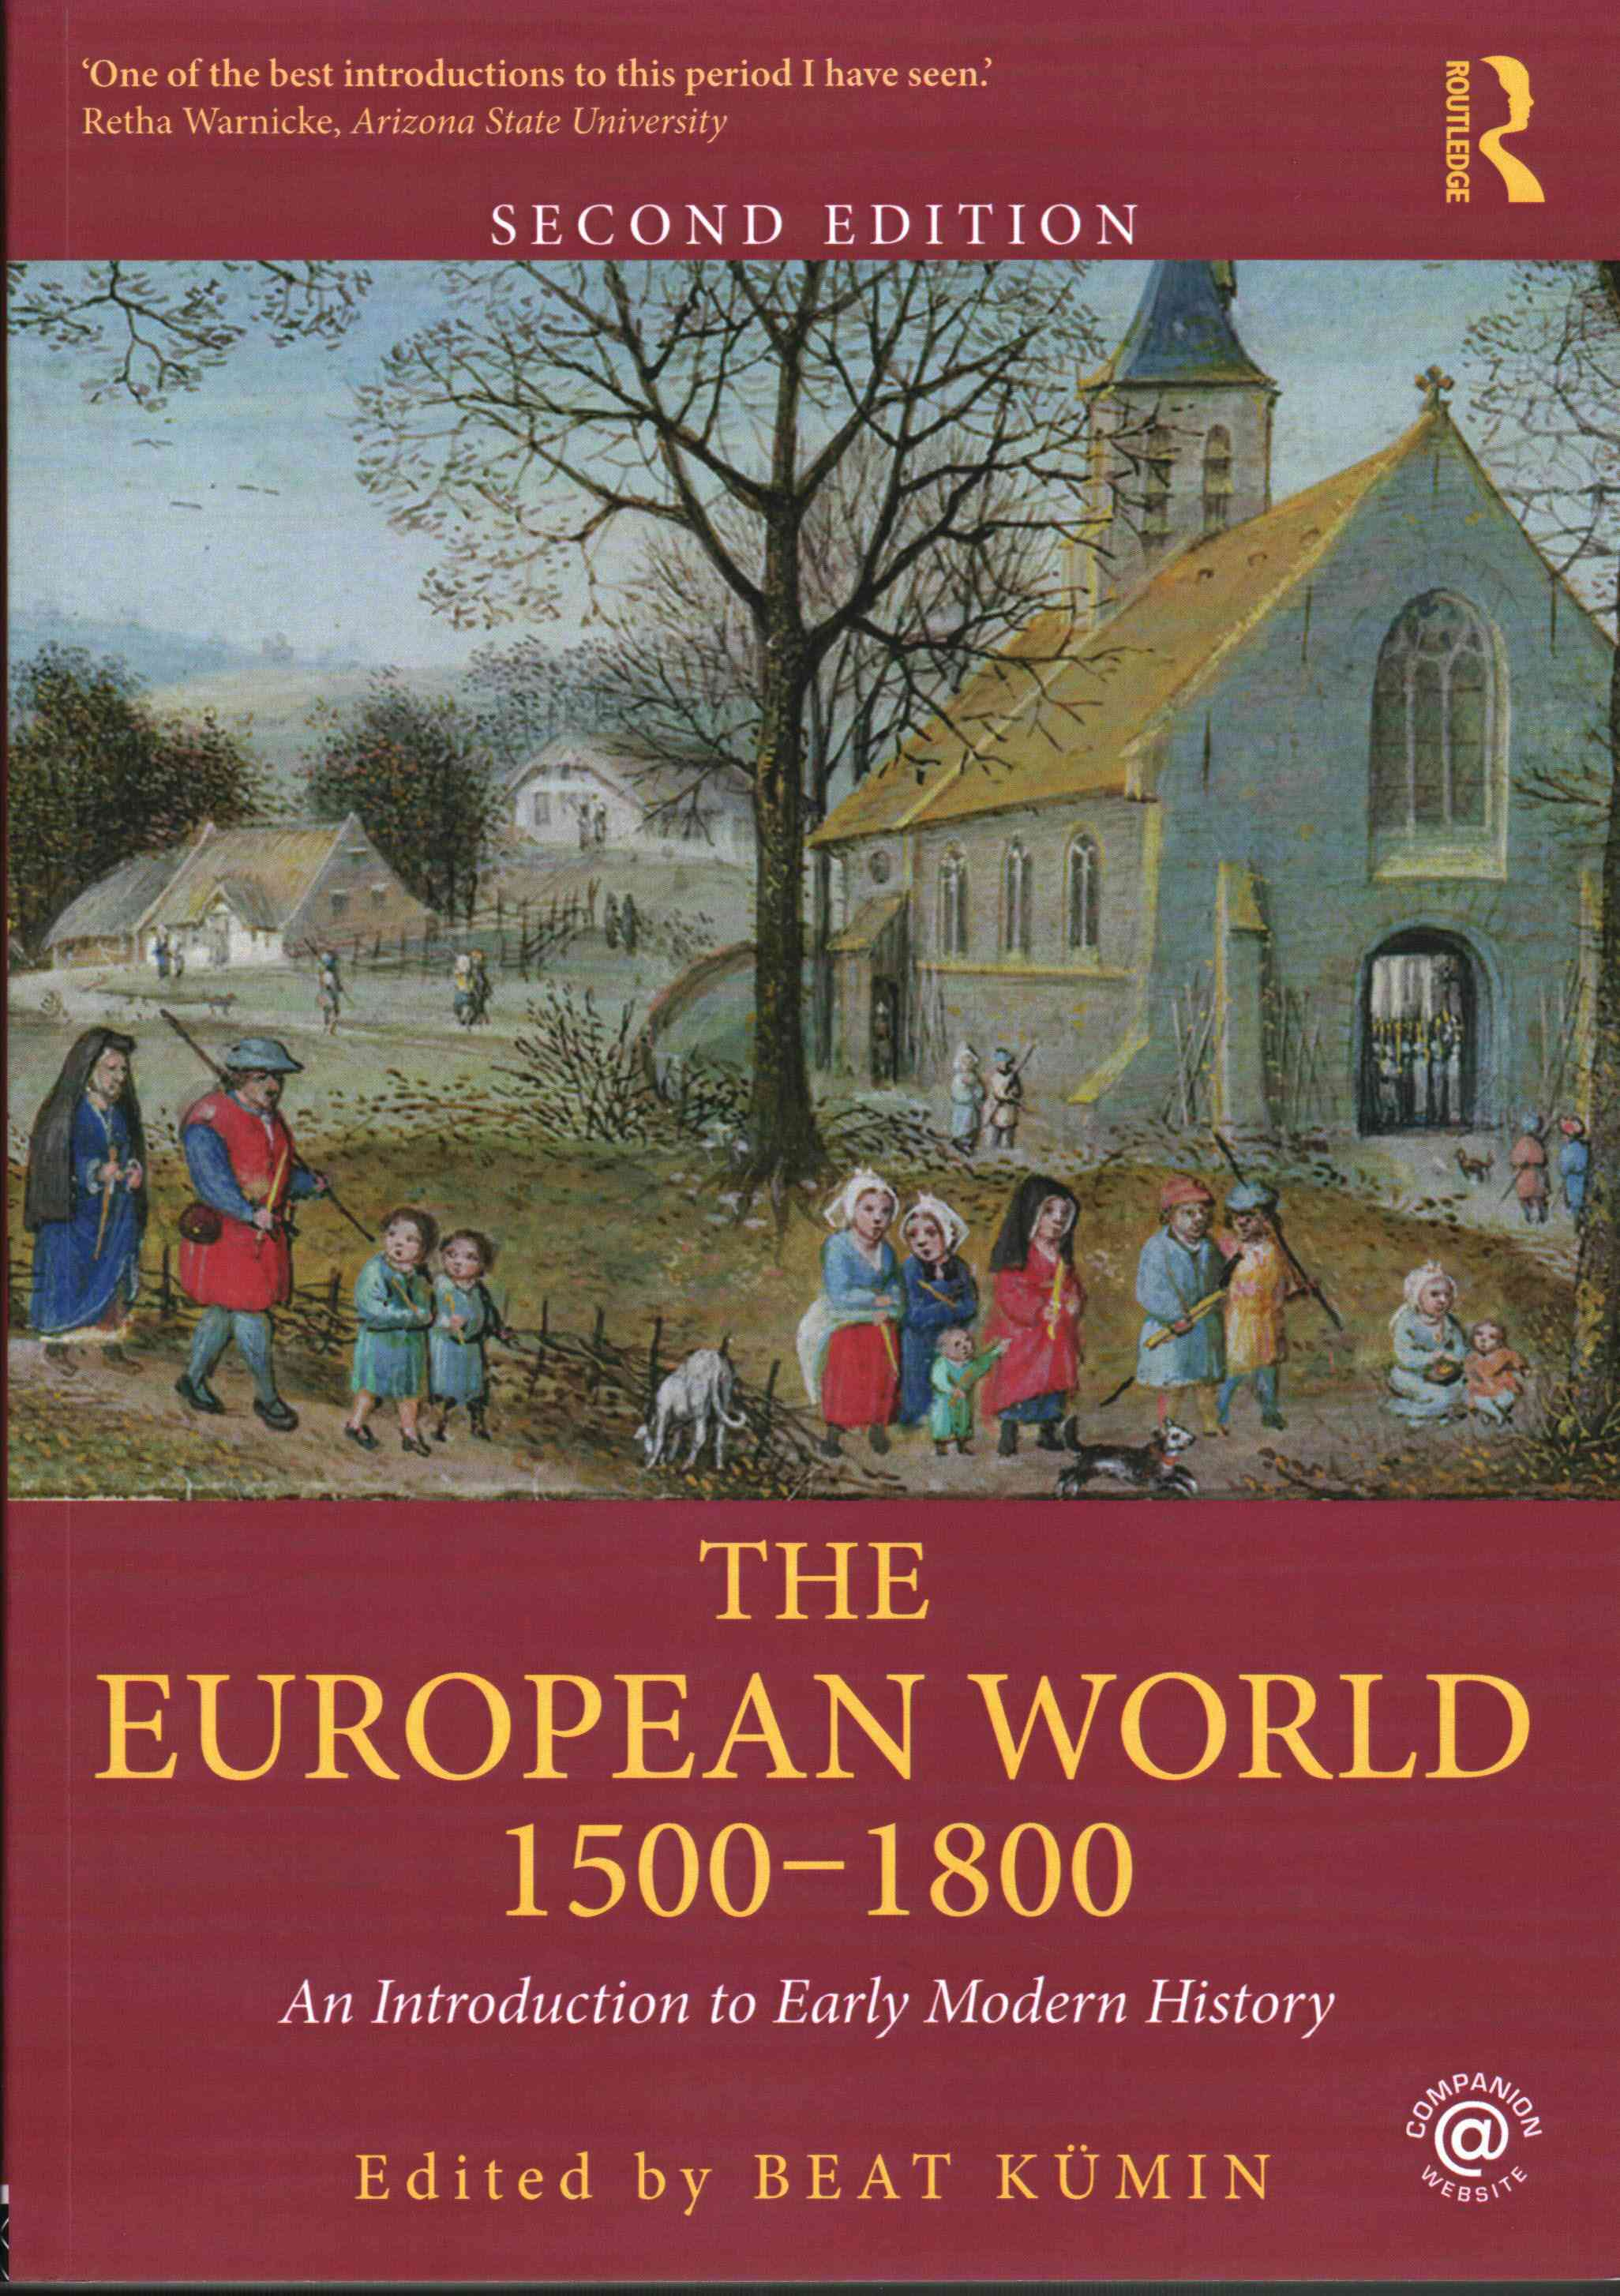 The European World 1500-1800 By Knmin, Beat (EDT)